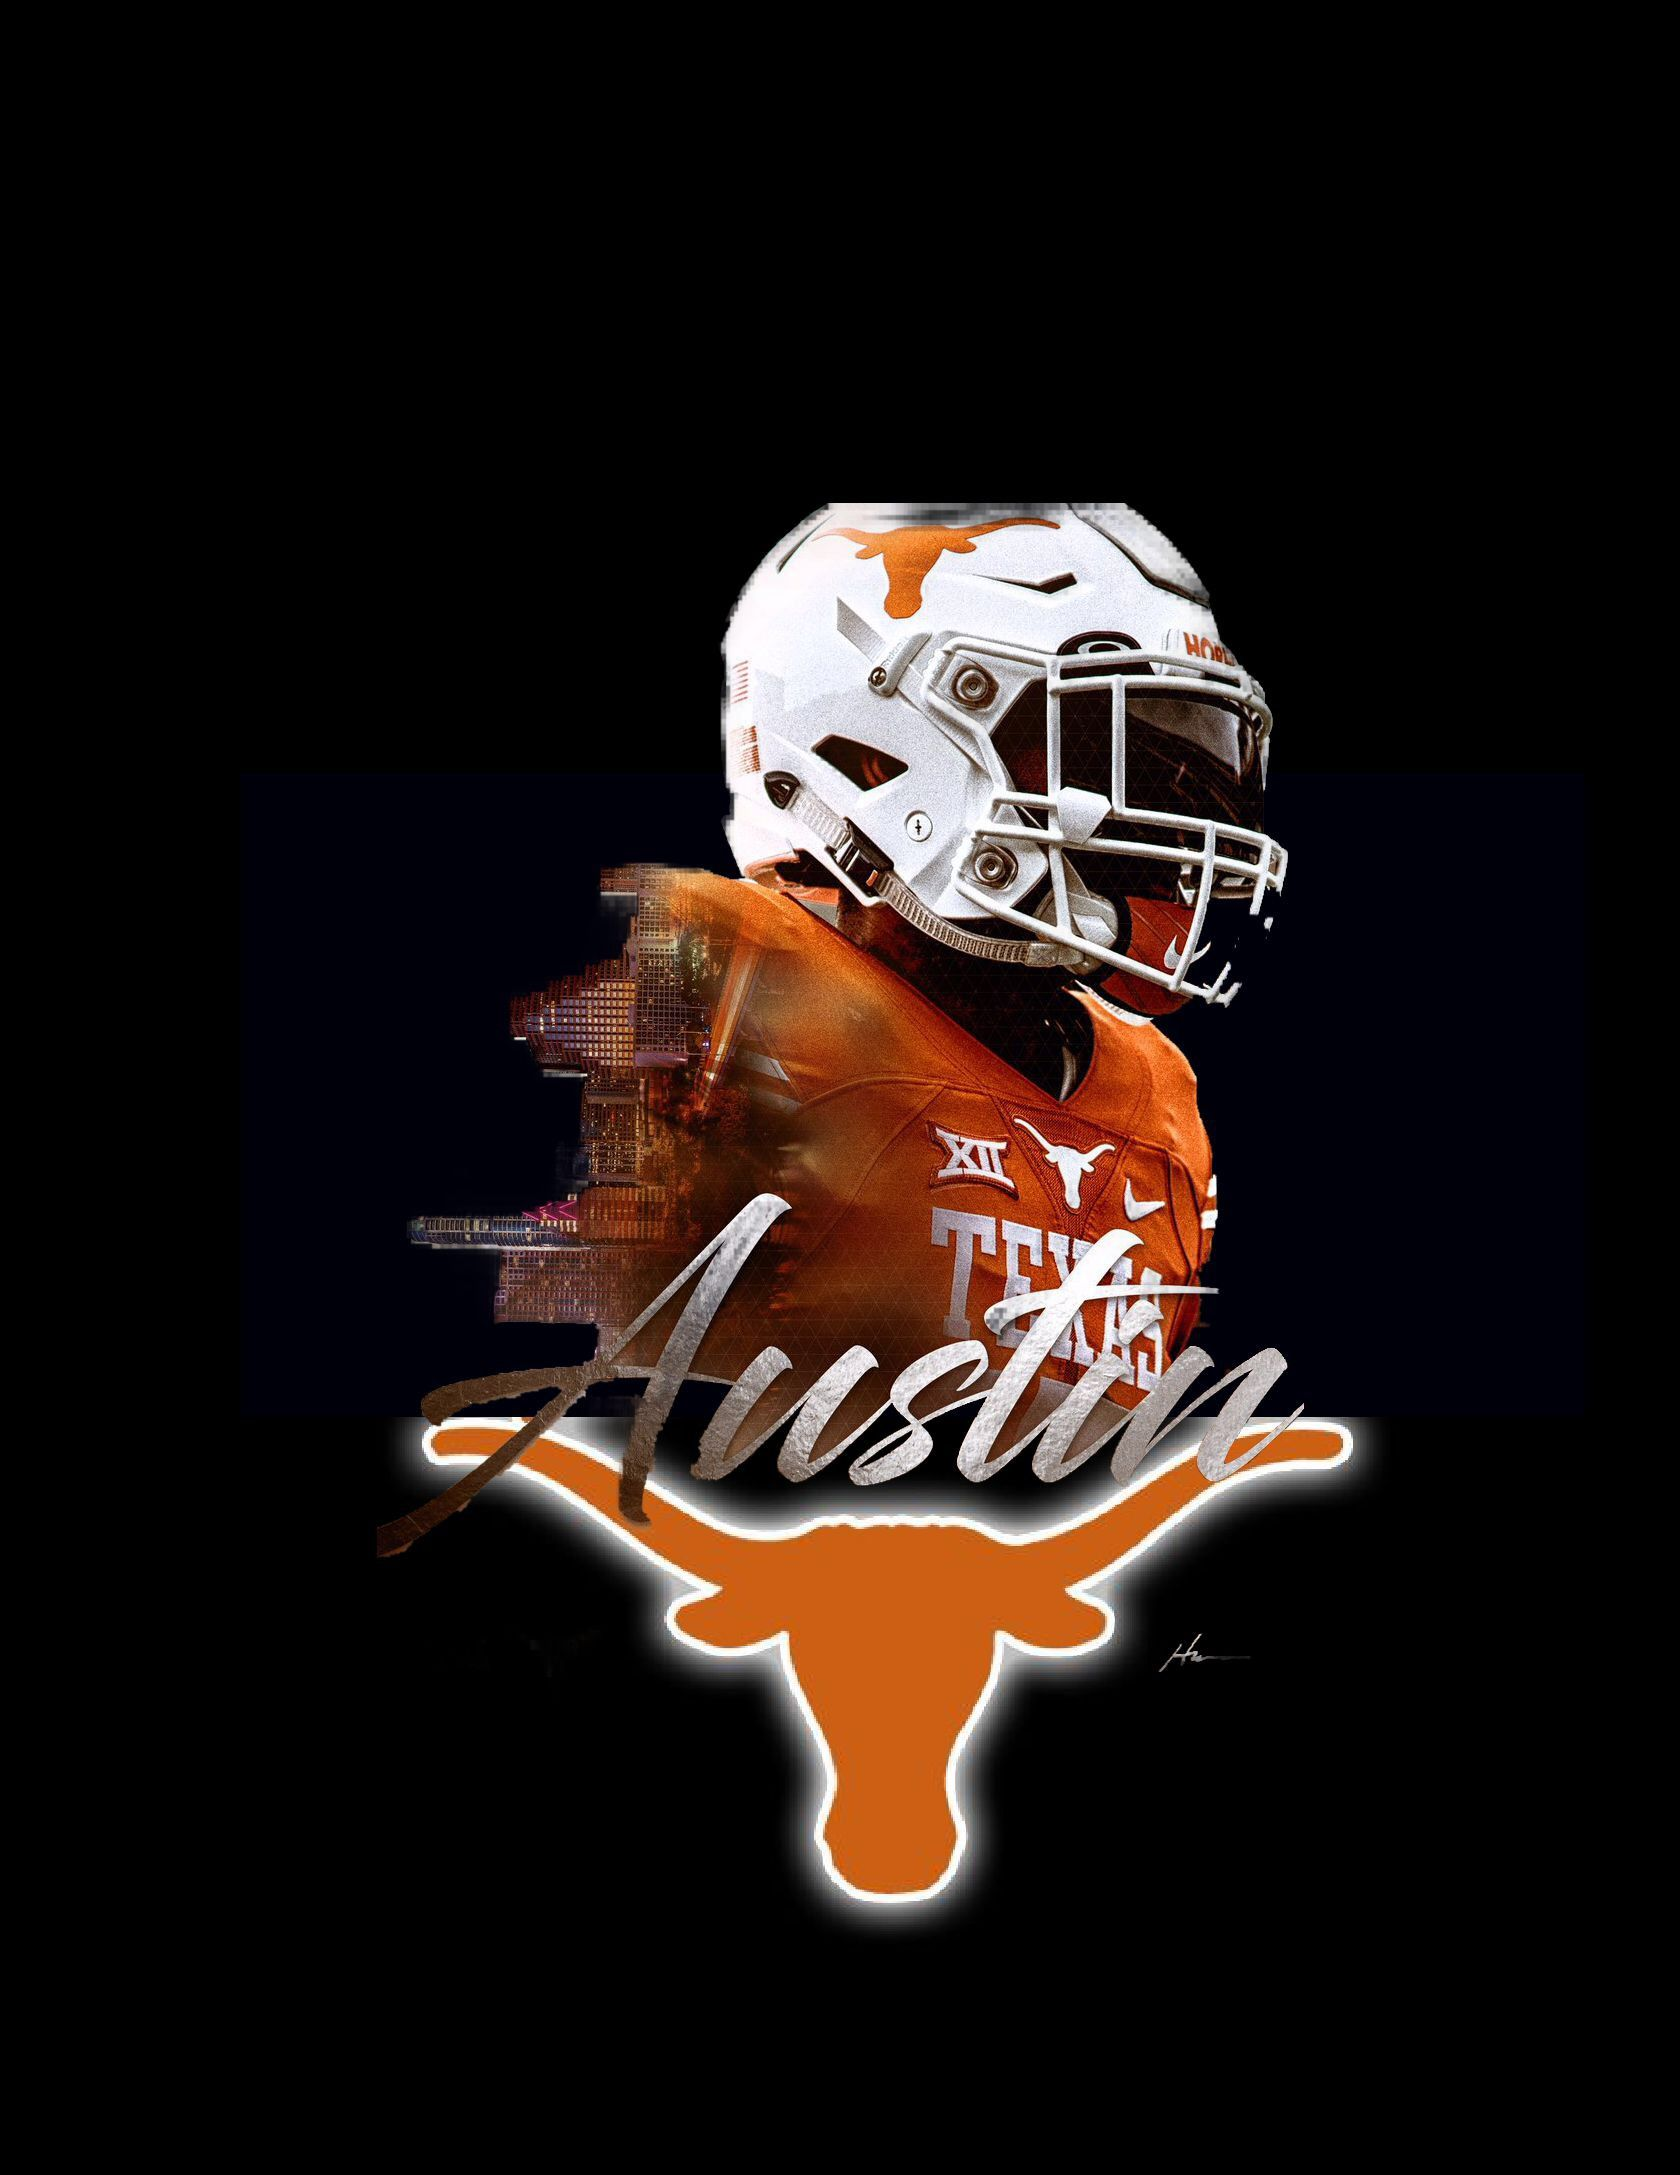 Texas Longhorns Wallpaper Texas Longhorns Football Helmets Longhorn